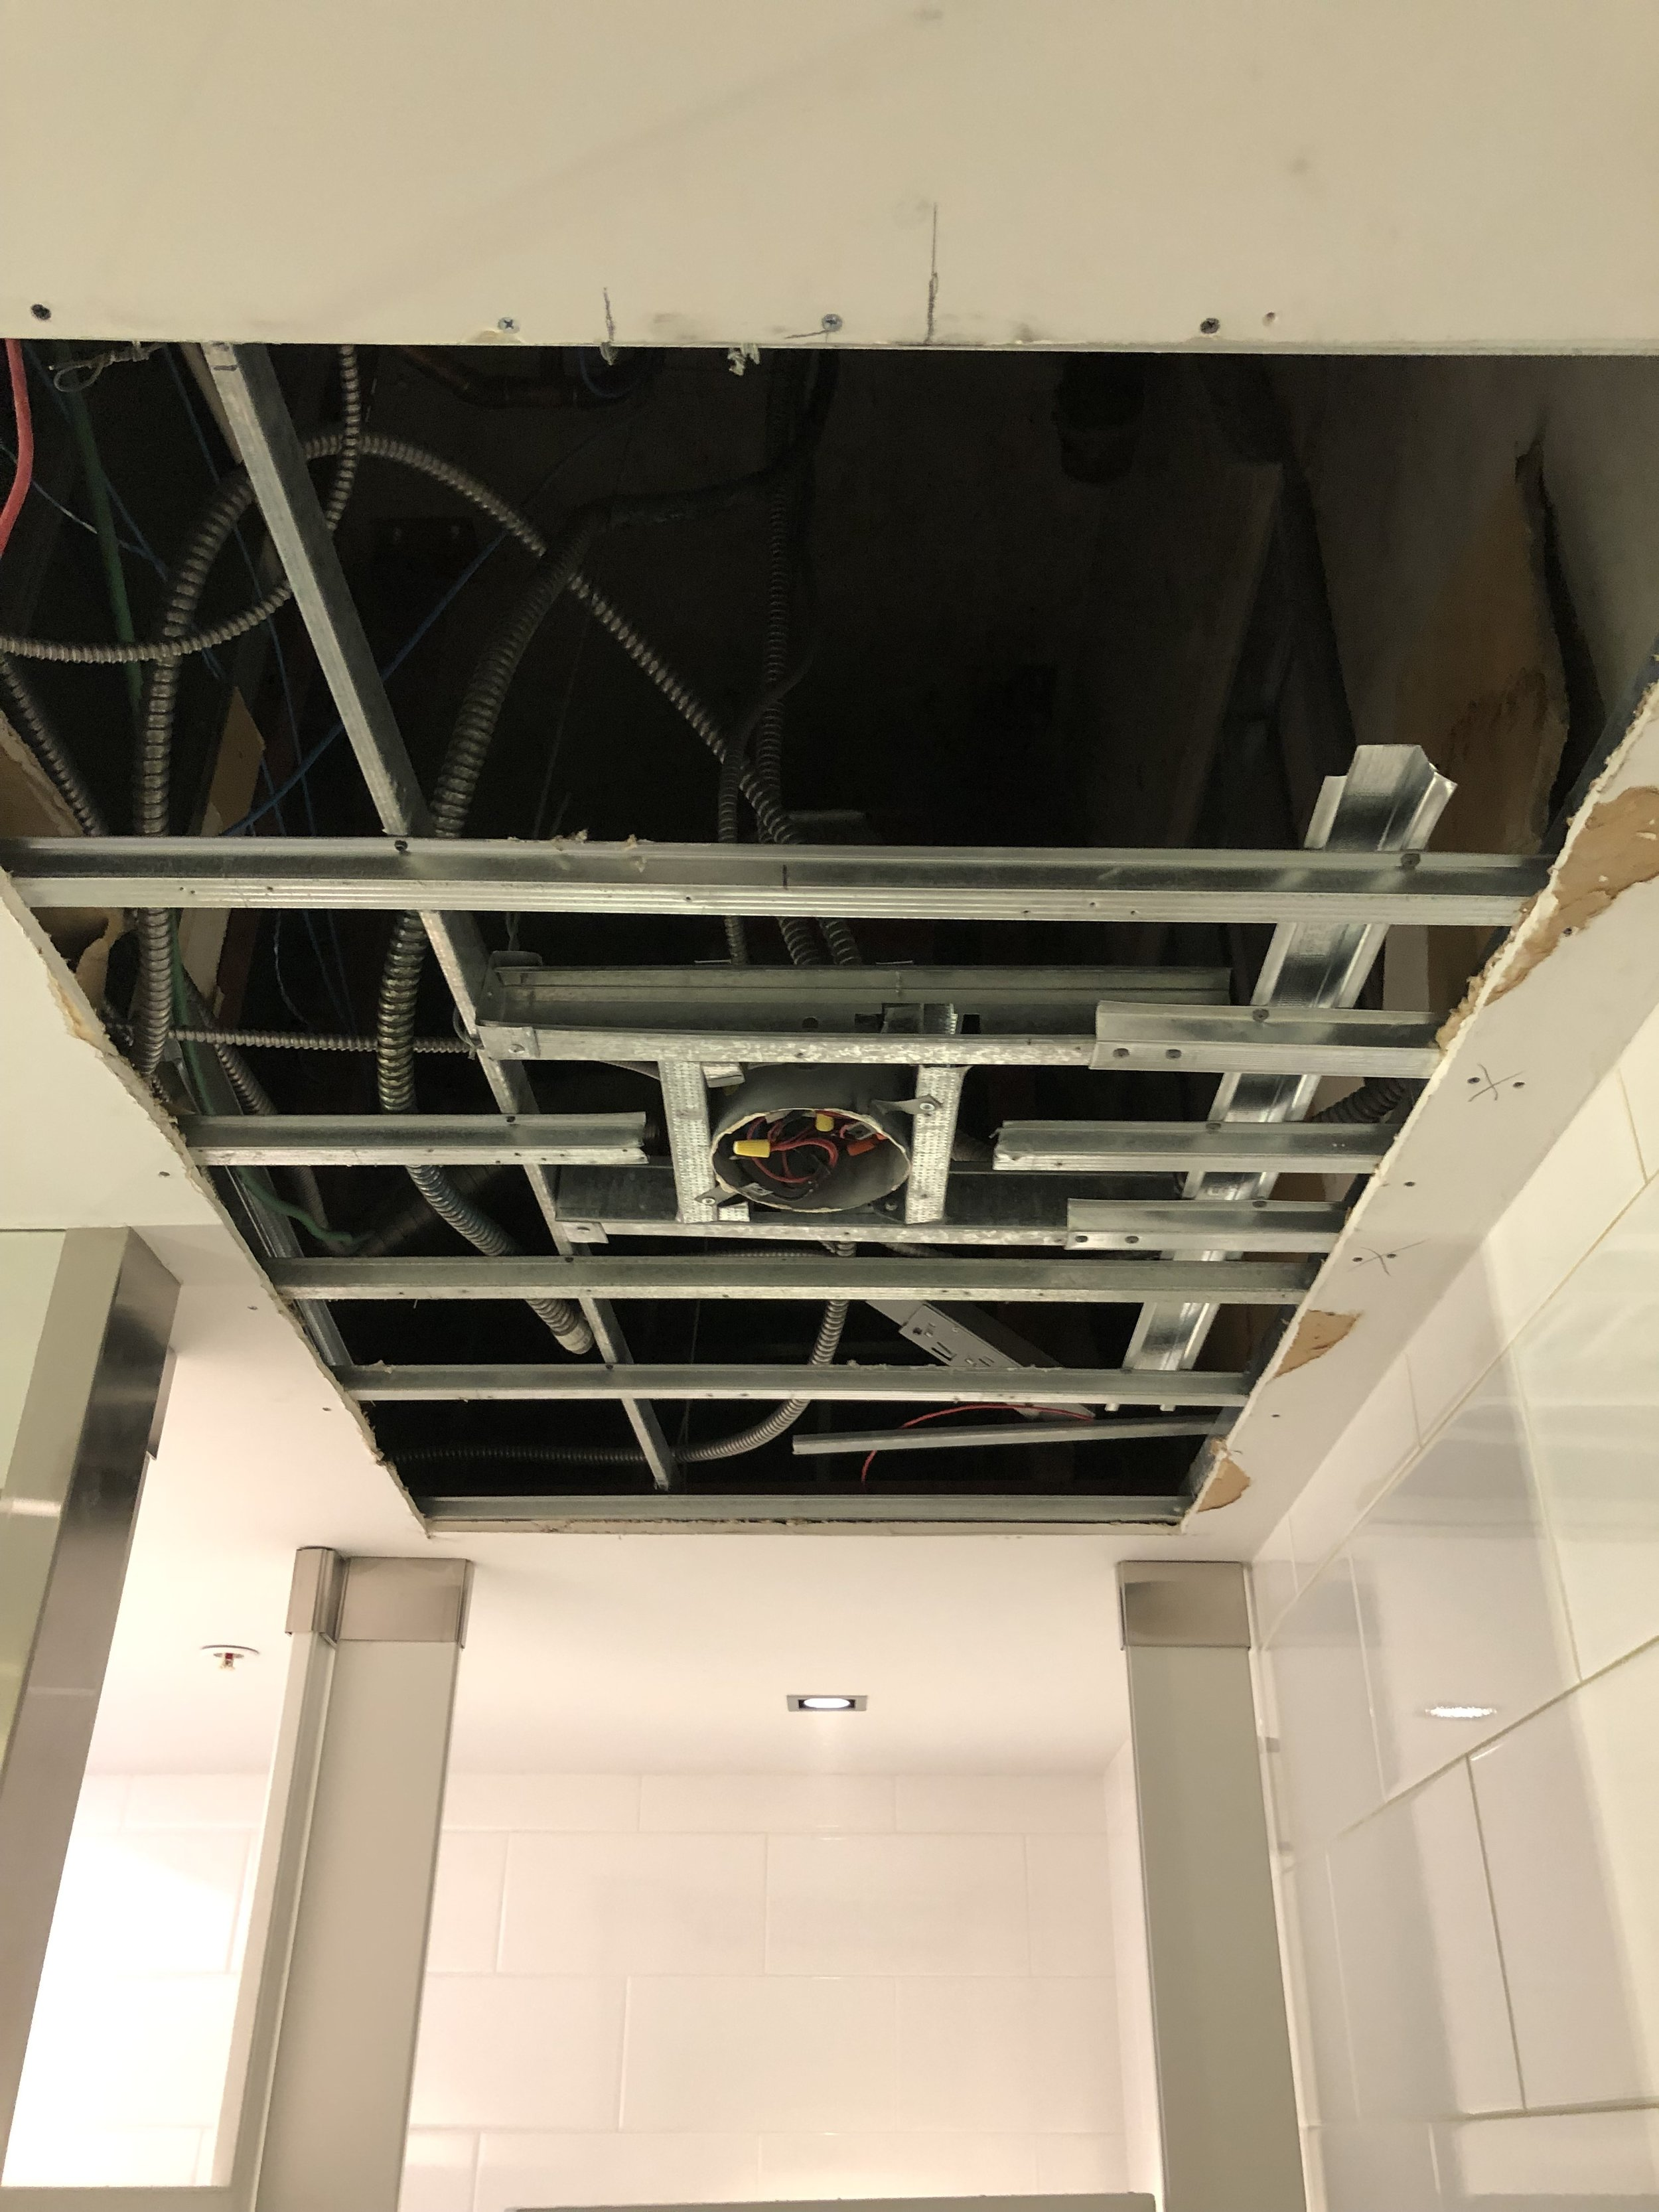 Ceiling removed due to leak